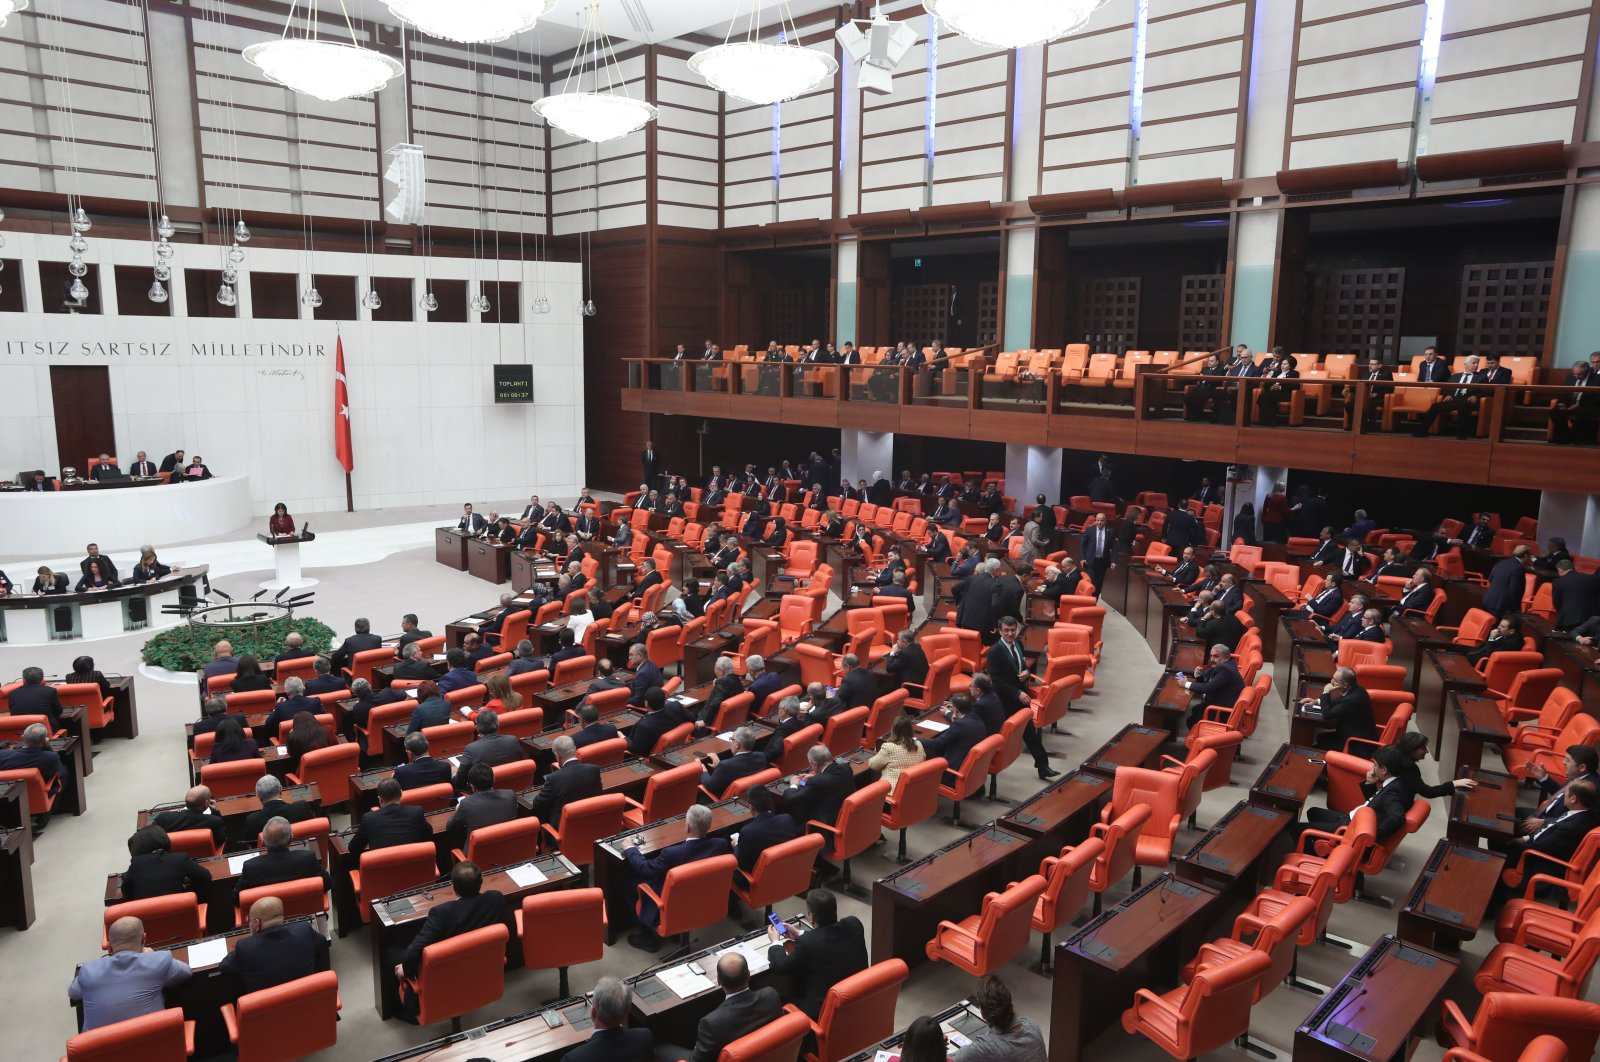 A special session of Parliament for the celebration of National Sovereignty and Children's Day as well as the 100th anniversary of the foundation of Parliament will be held on April 23, 2019. (Photo by Ali Ekeyılmaz/Daily Sabah)